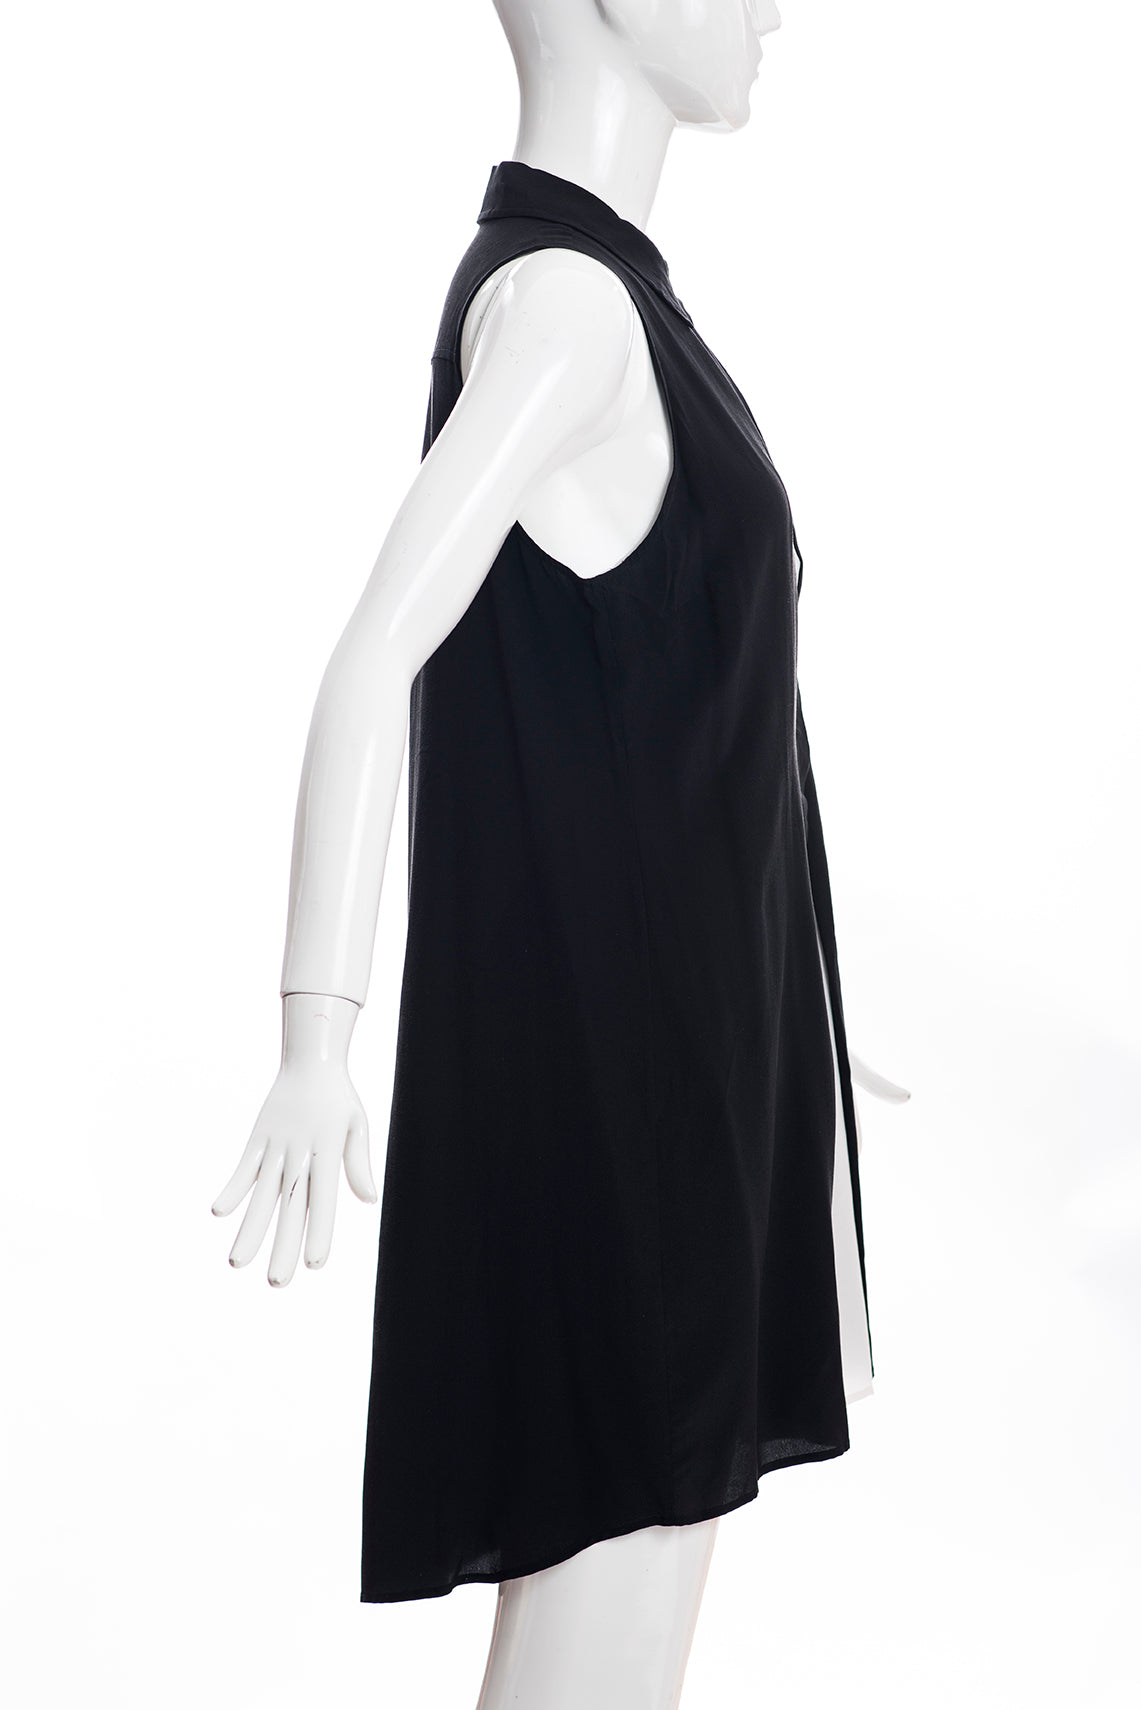 ALEXANDER WANG Black White Contrast Panel Silk Crepe Sleeveless Shift Dress 4 GC